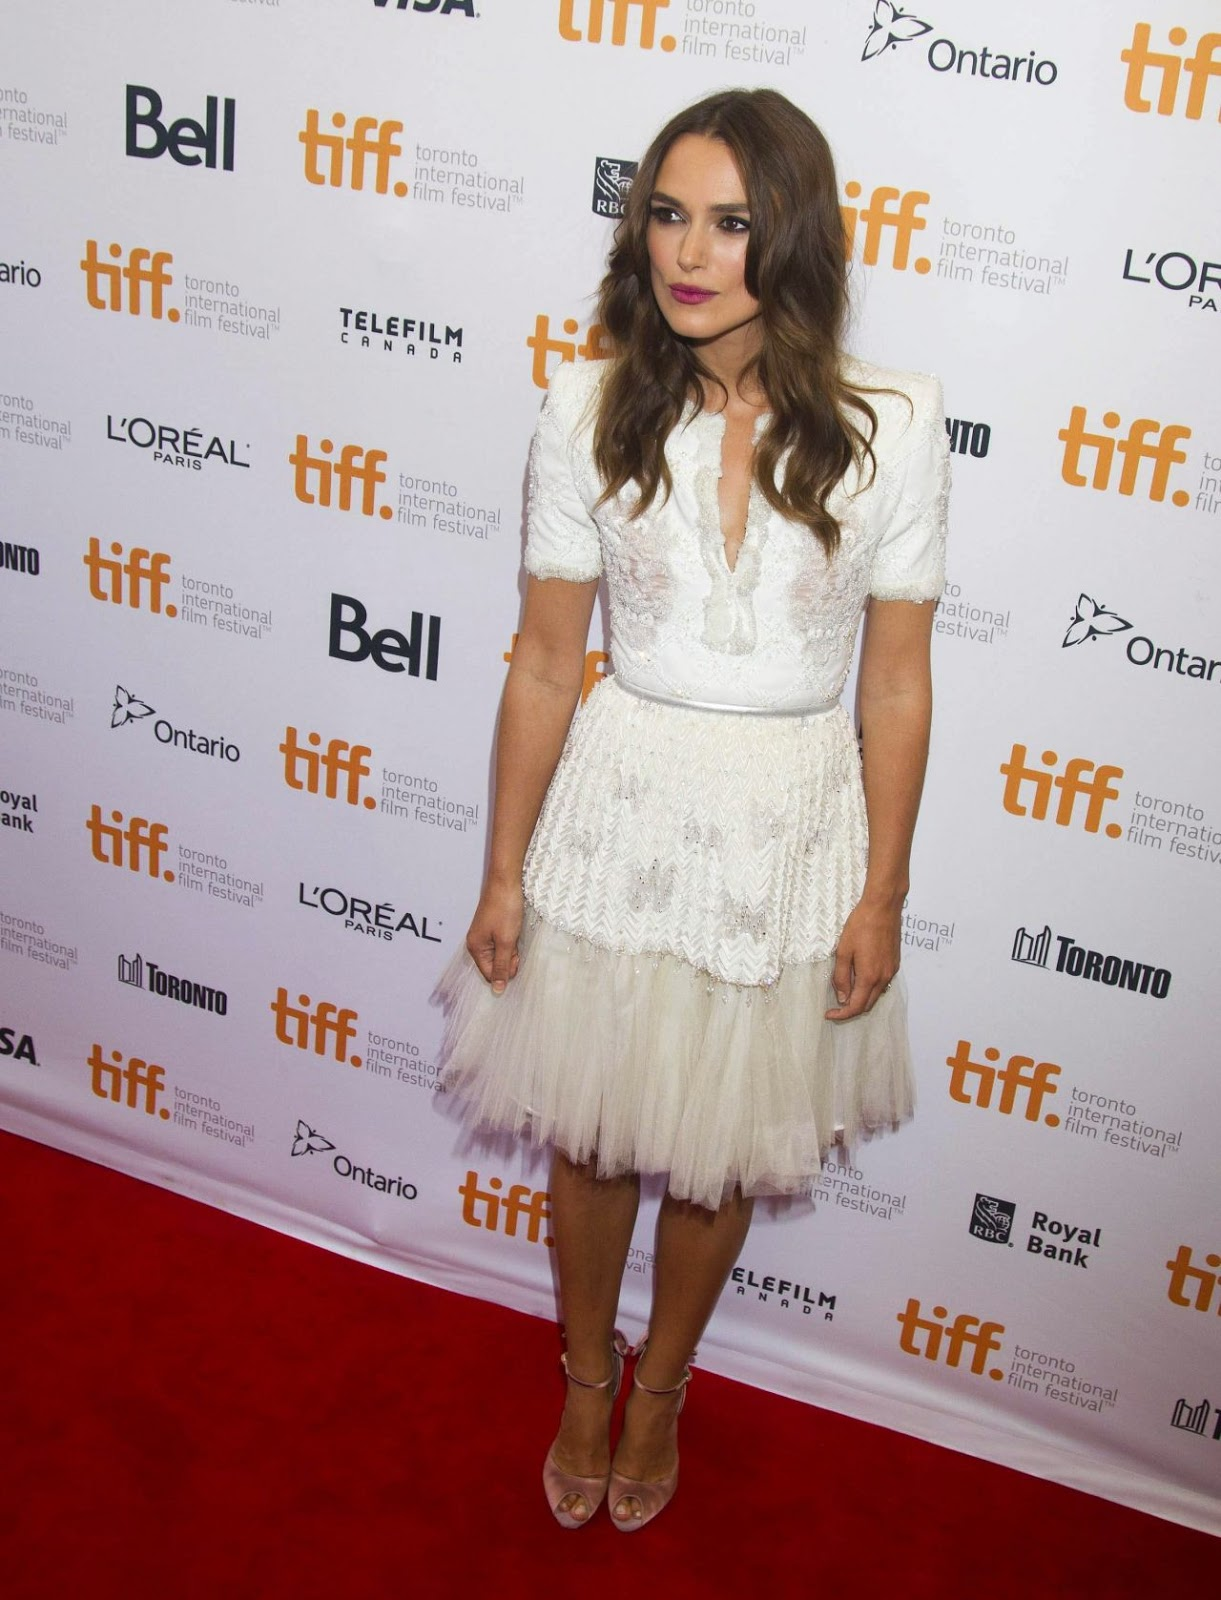 Keira Knightley is beautiful in Chanel at 'The Imitation Game' Toronto International Film Festival' premiere